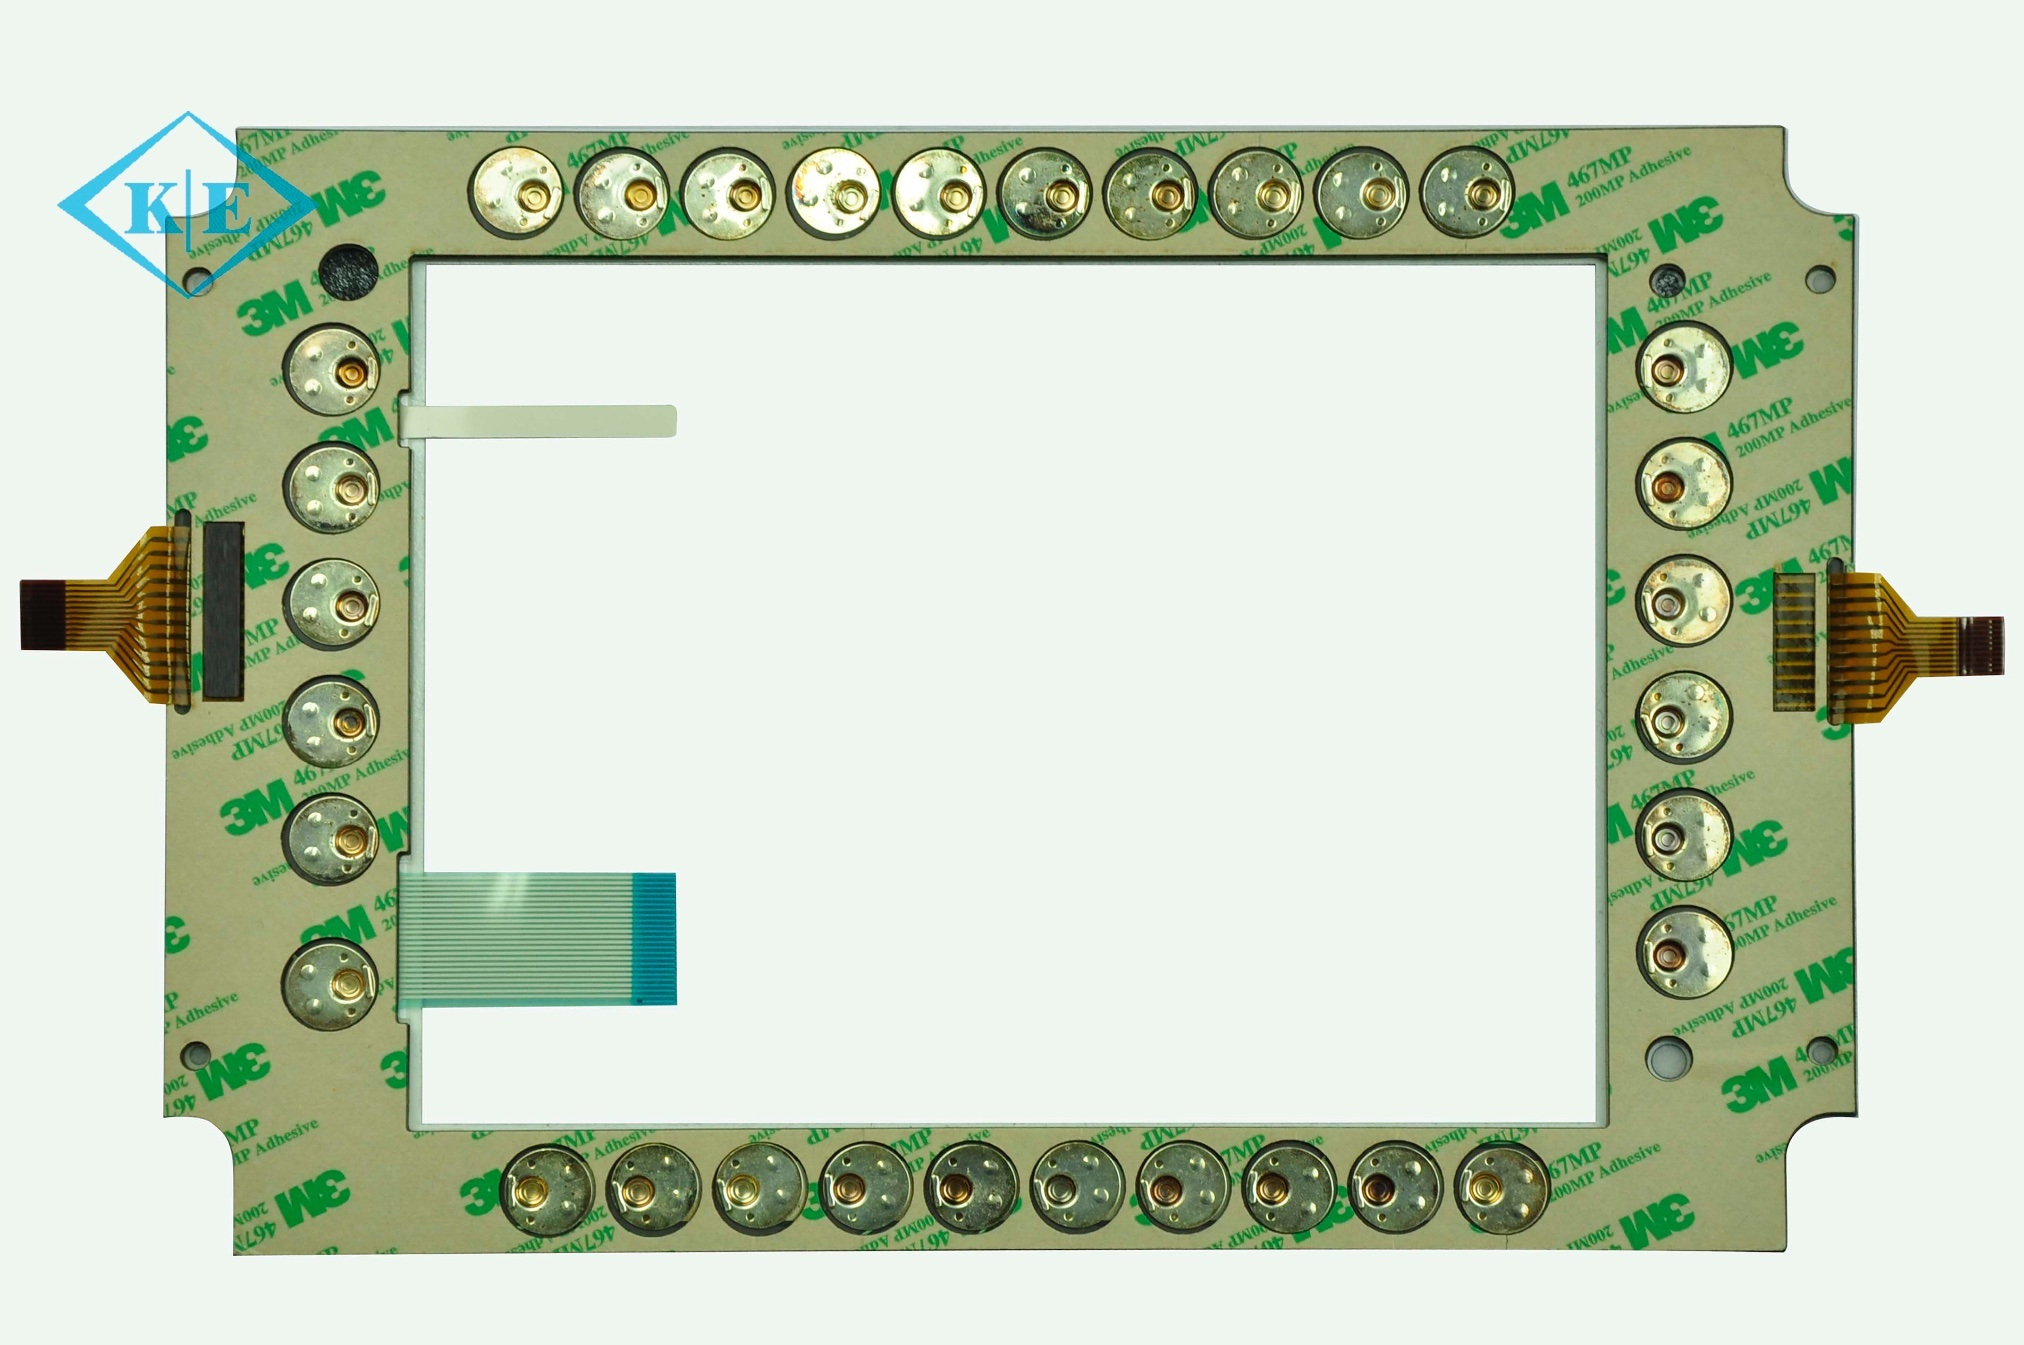 China Duraswitch Fpc Circuit Assembly Membrane Keypad Control With Keyboard Printed Board 3m Adhesive Keys